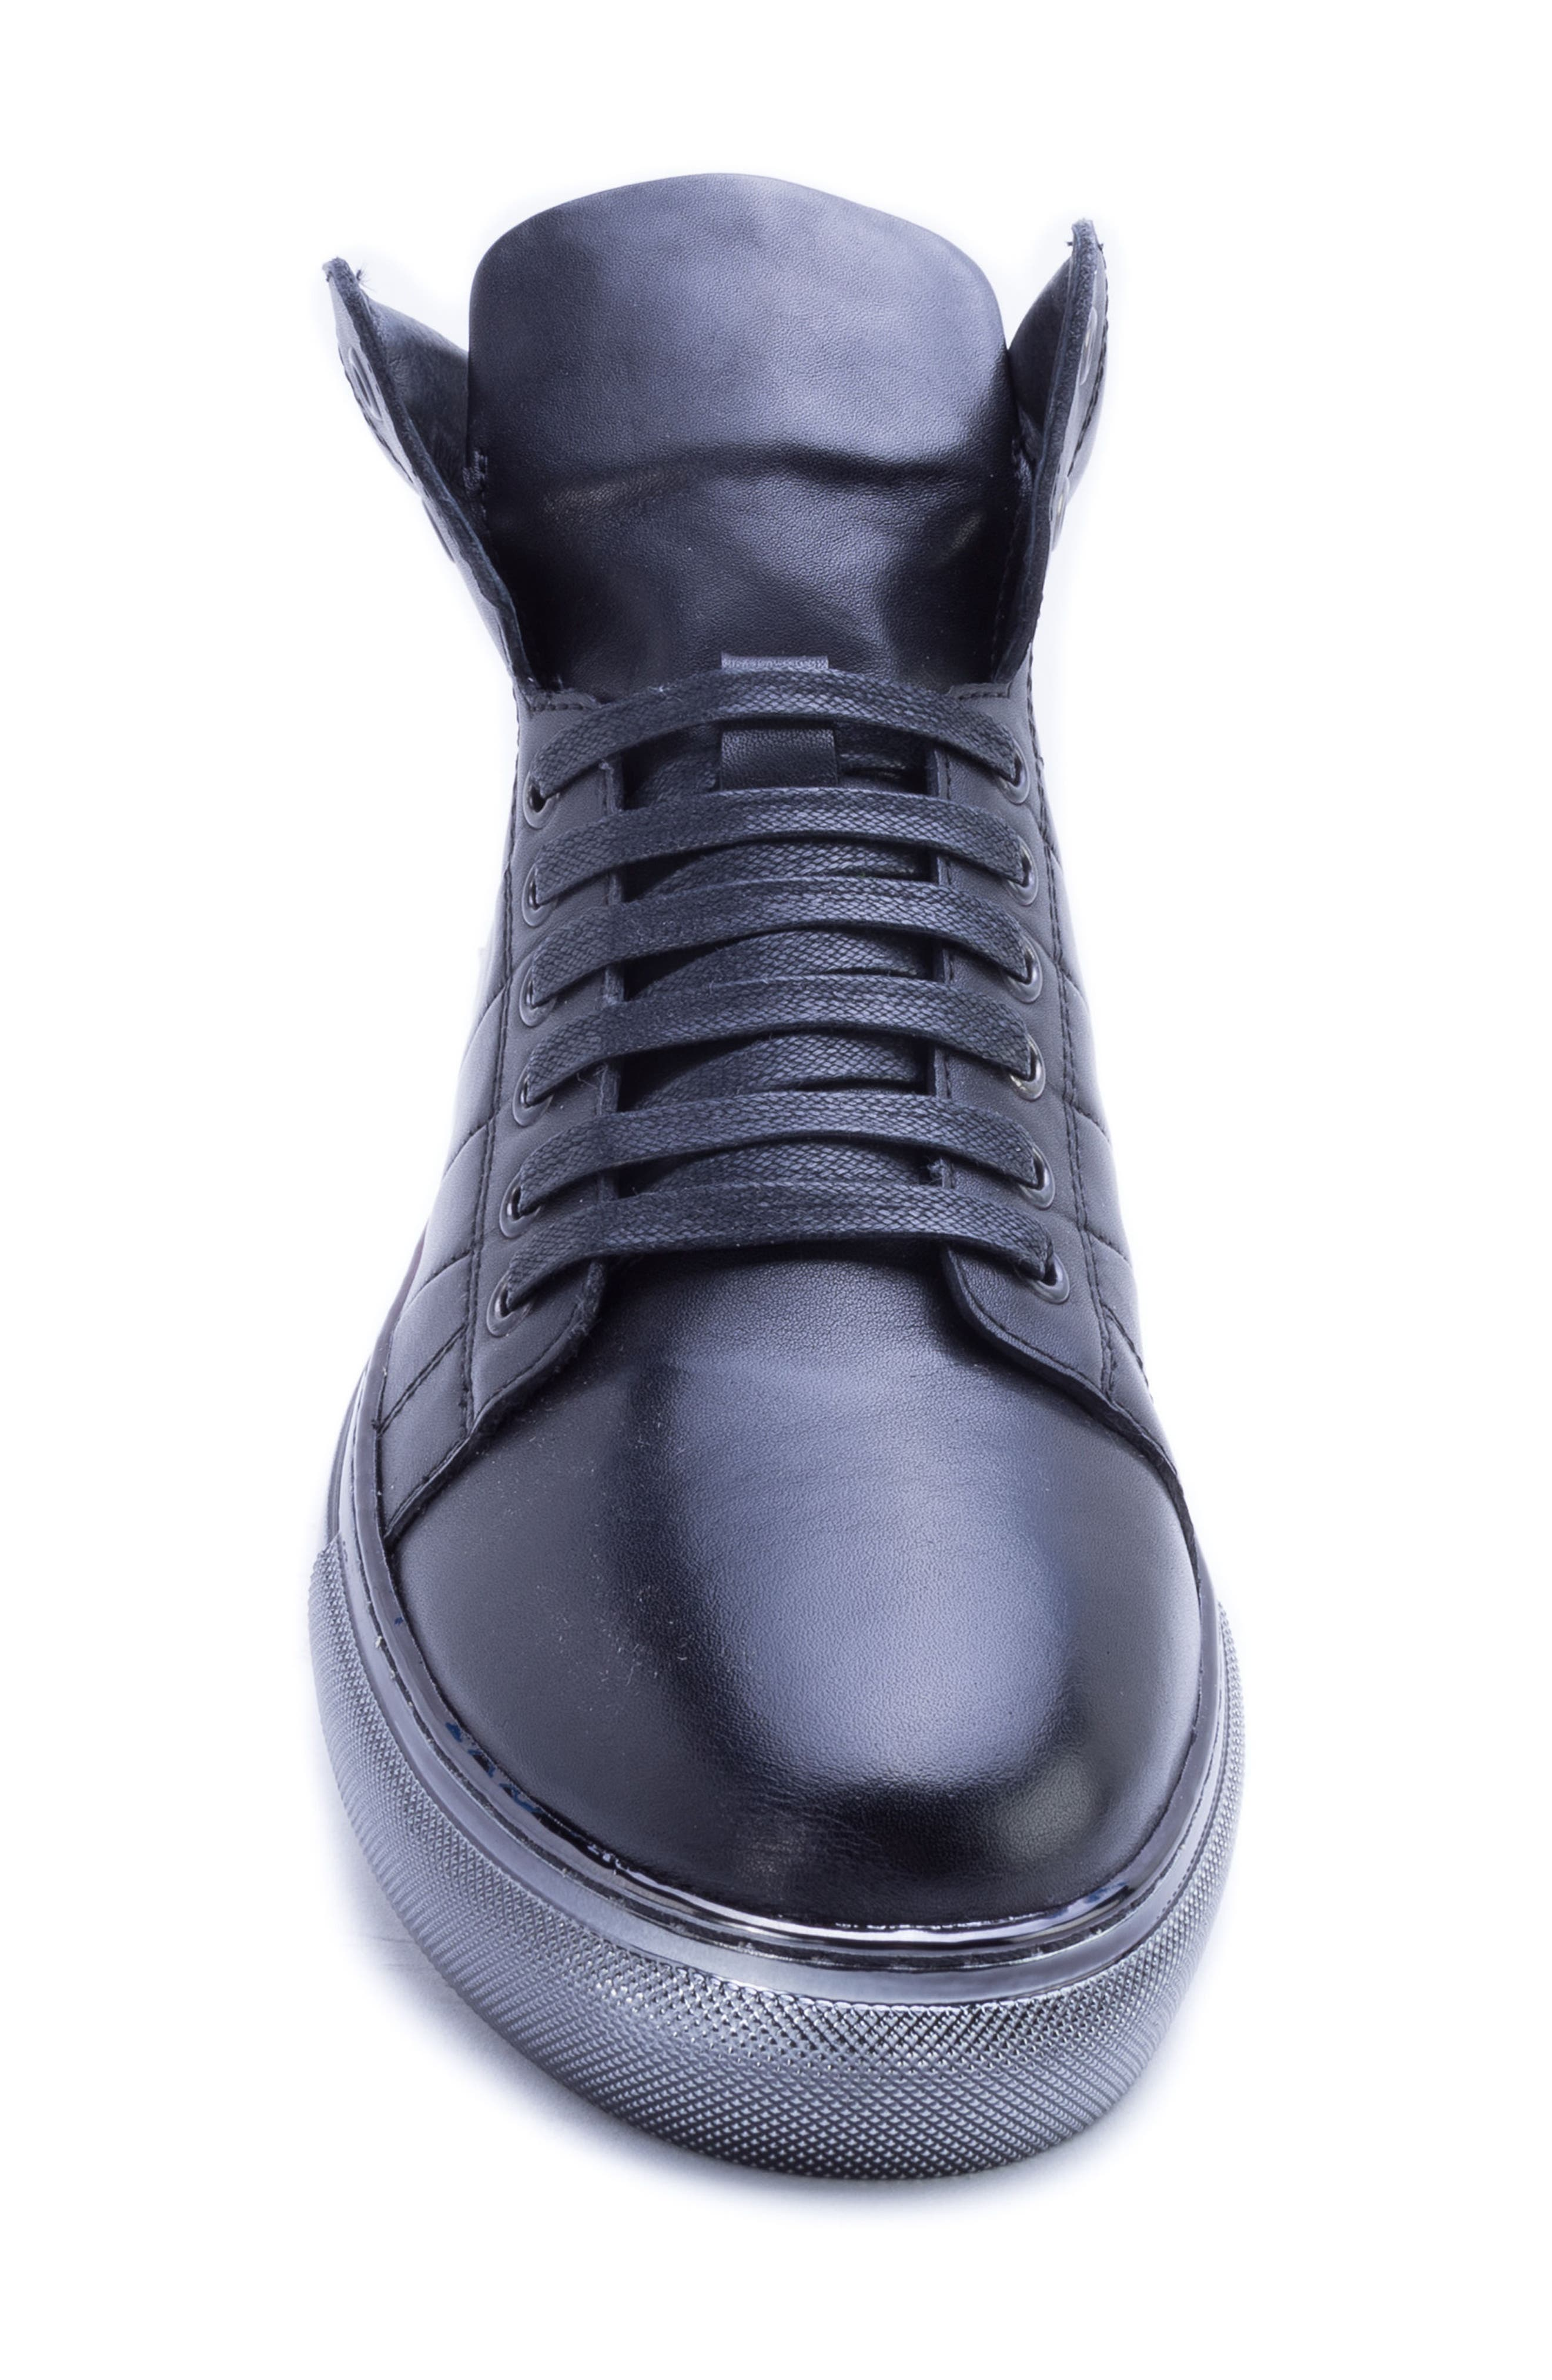 BADGLEY MISCHKA COLLECTION,                             Badgley Mischka Bronson Sneaker,                             Alternate thumbnail 5, color,                             BLACK LEATHER